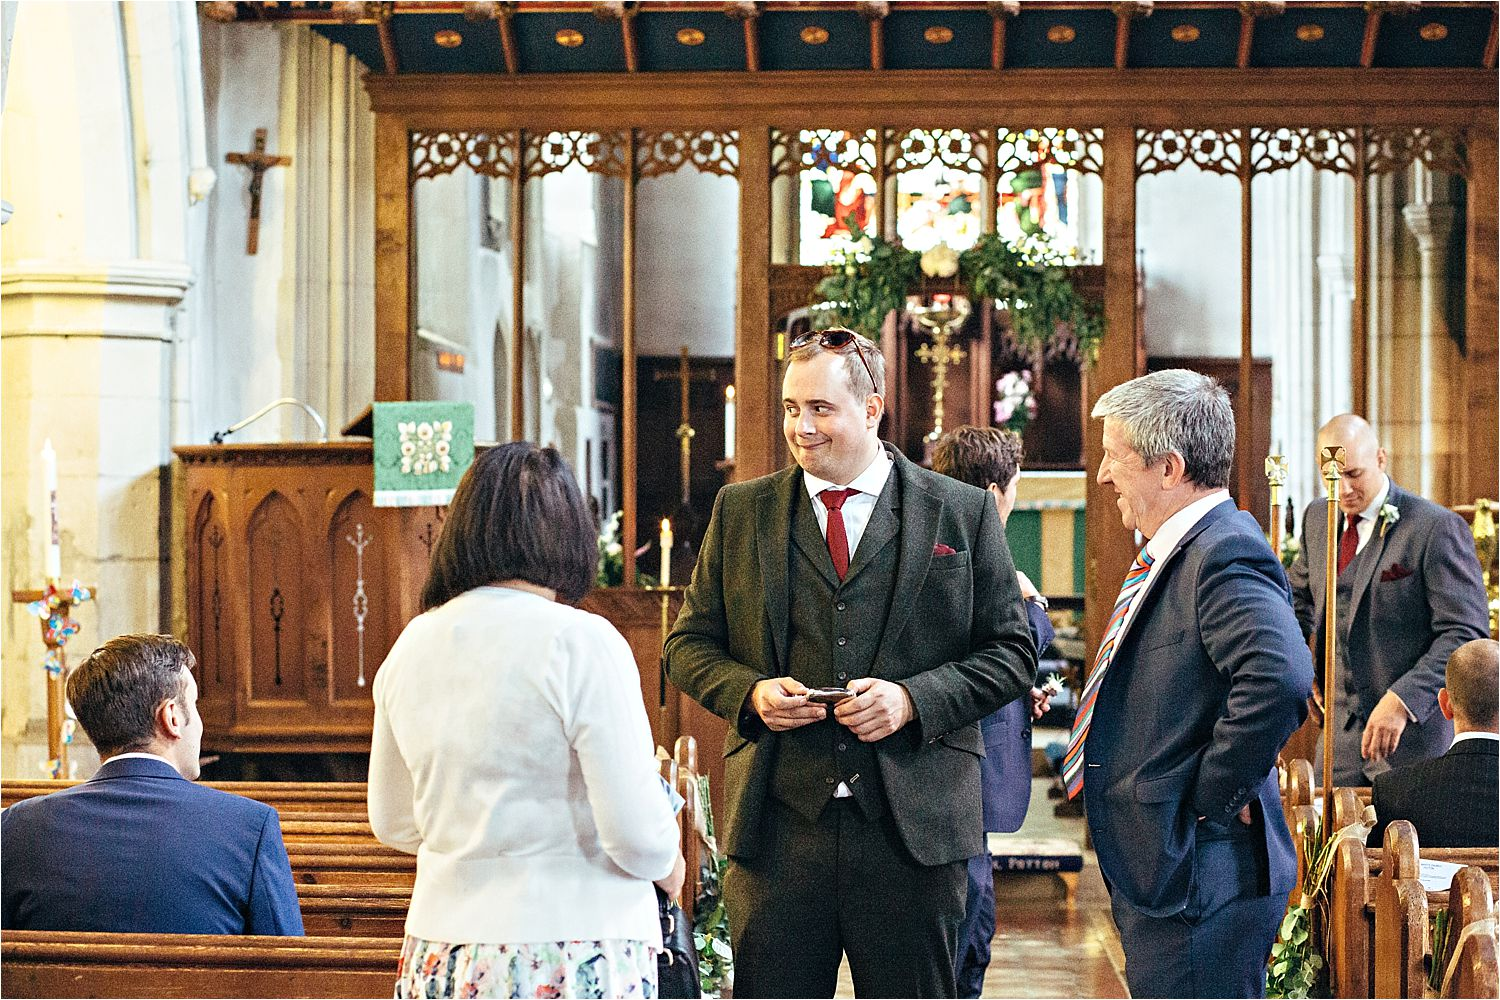 Guests mingling in church for wedding in Bedfordshire